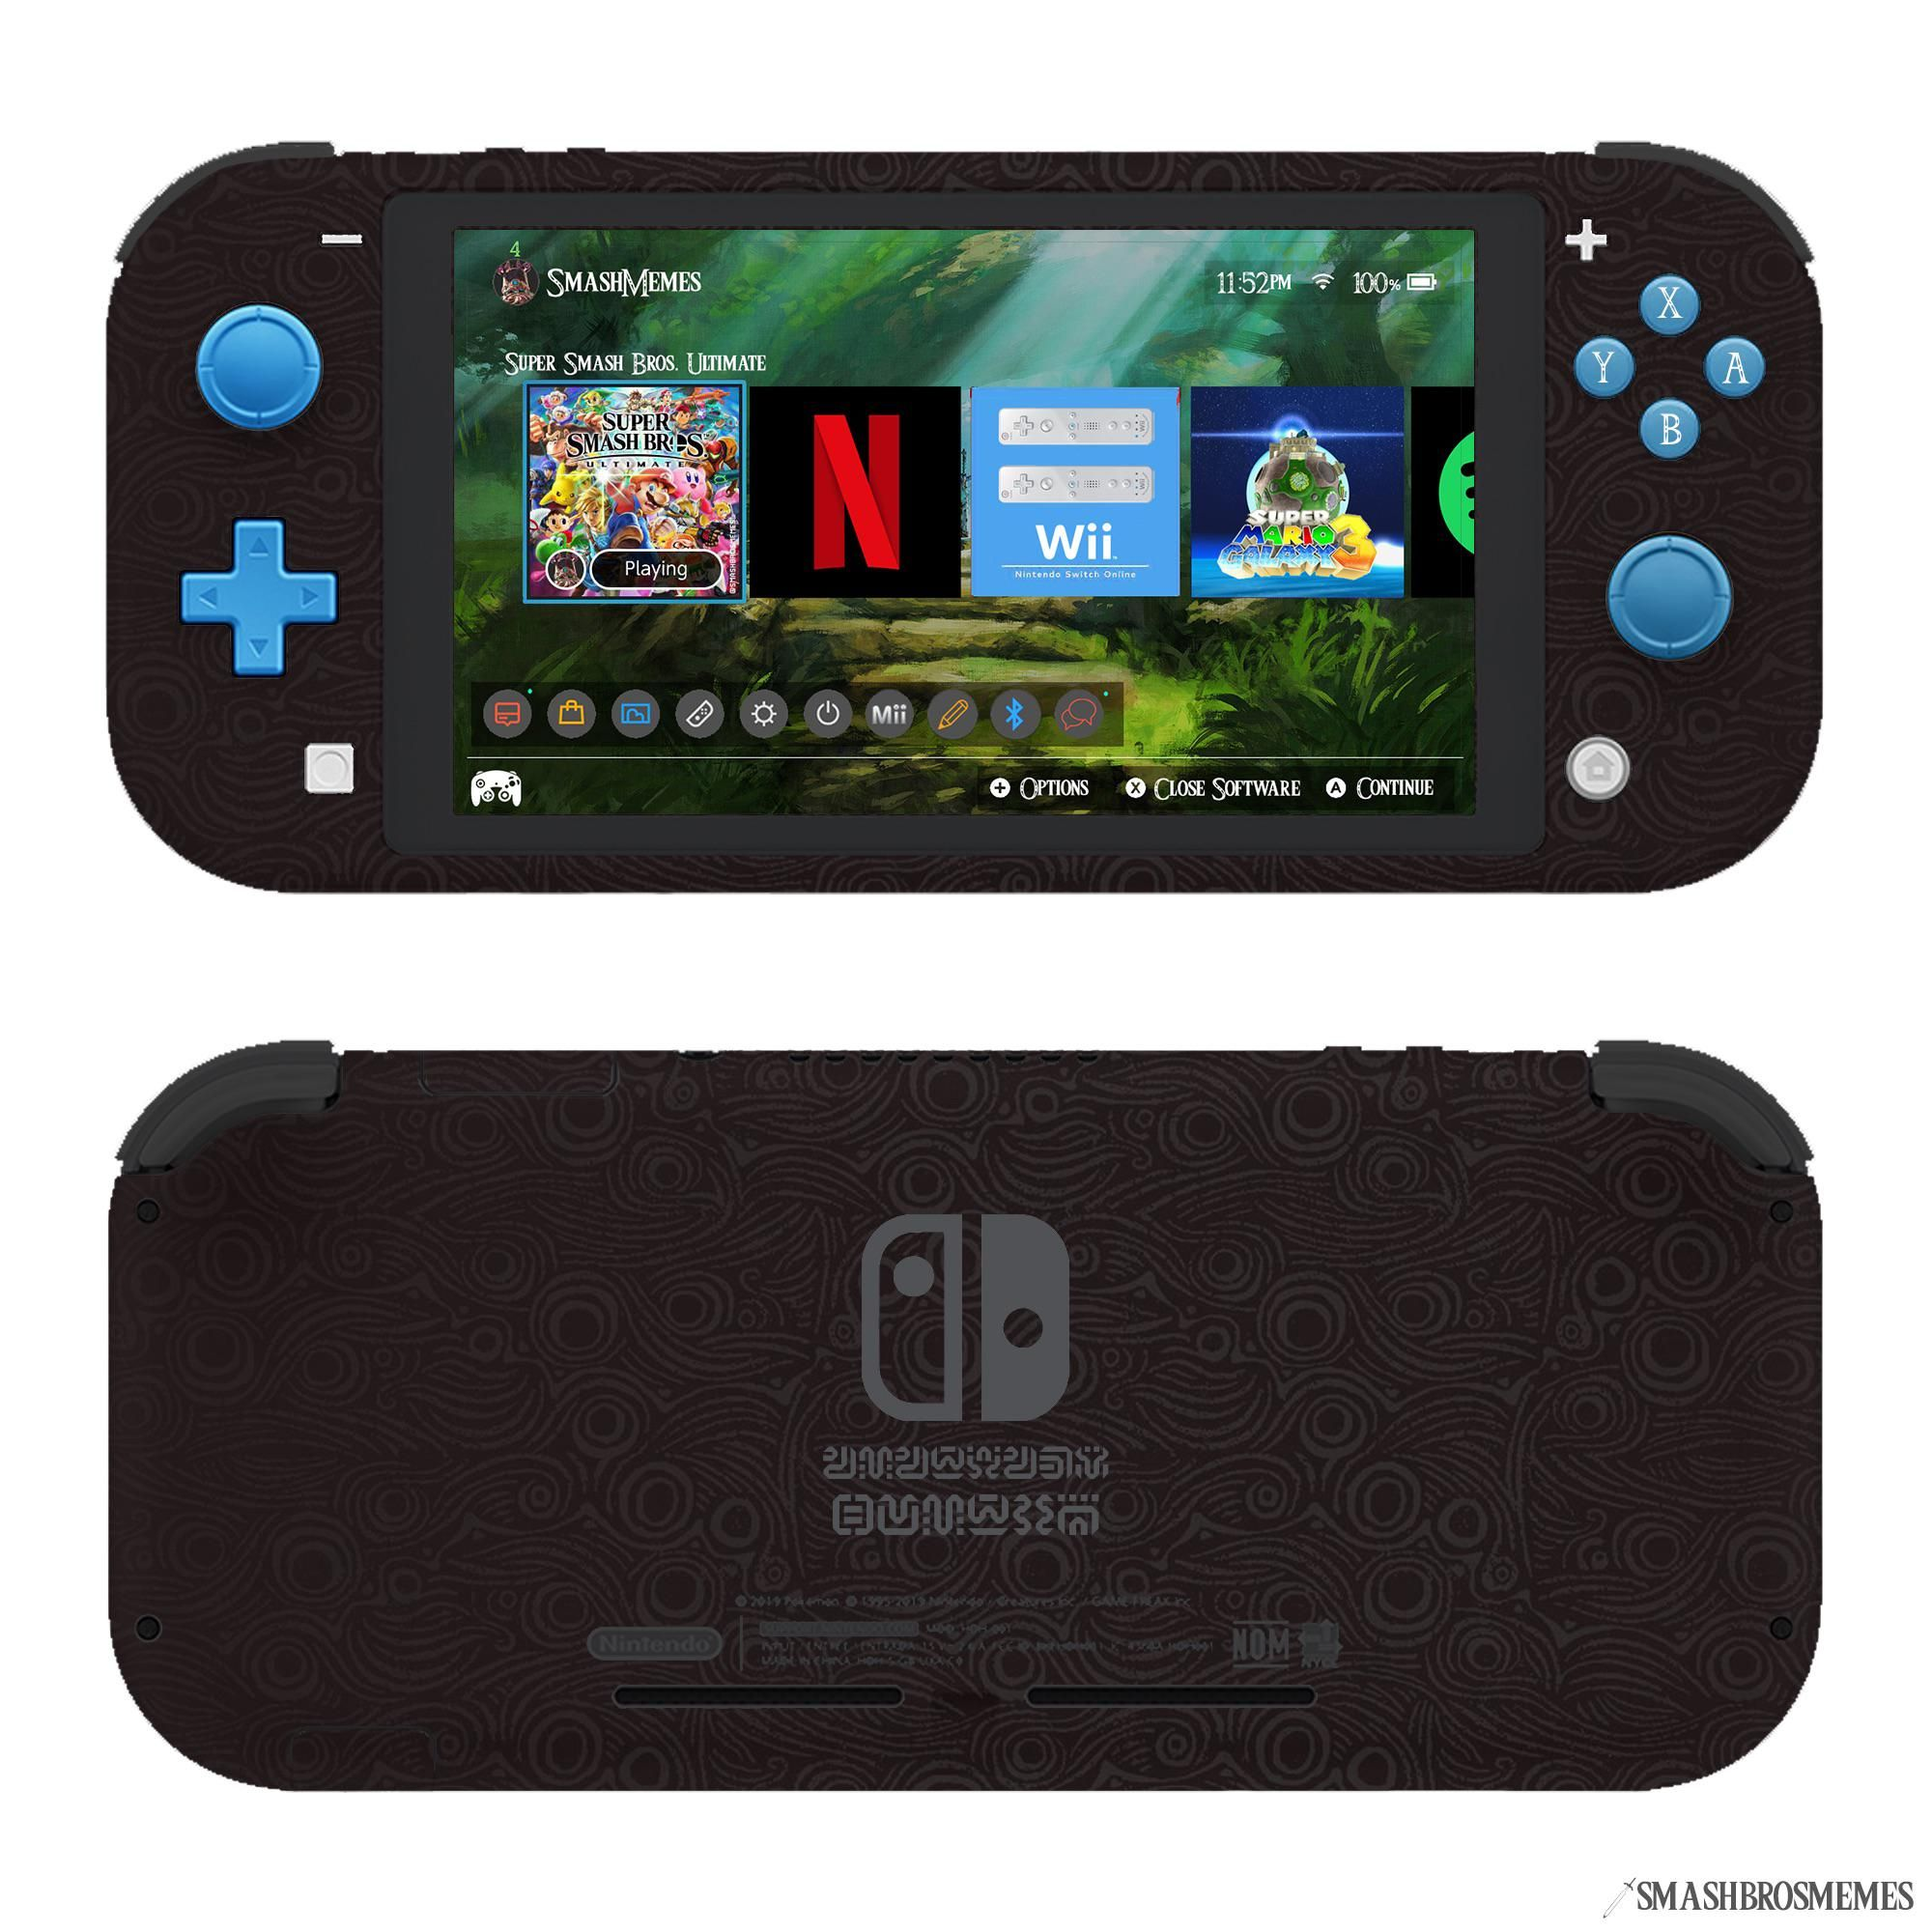 Nintendo Switch Lite Botw Edition Concept Along With A Home Screen Design That I Made Nintendo Switch Accessories Nintendo Switch Games Nintendo